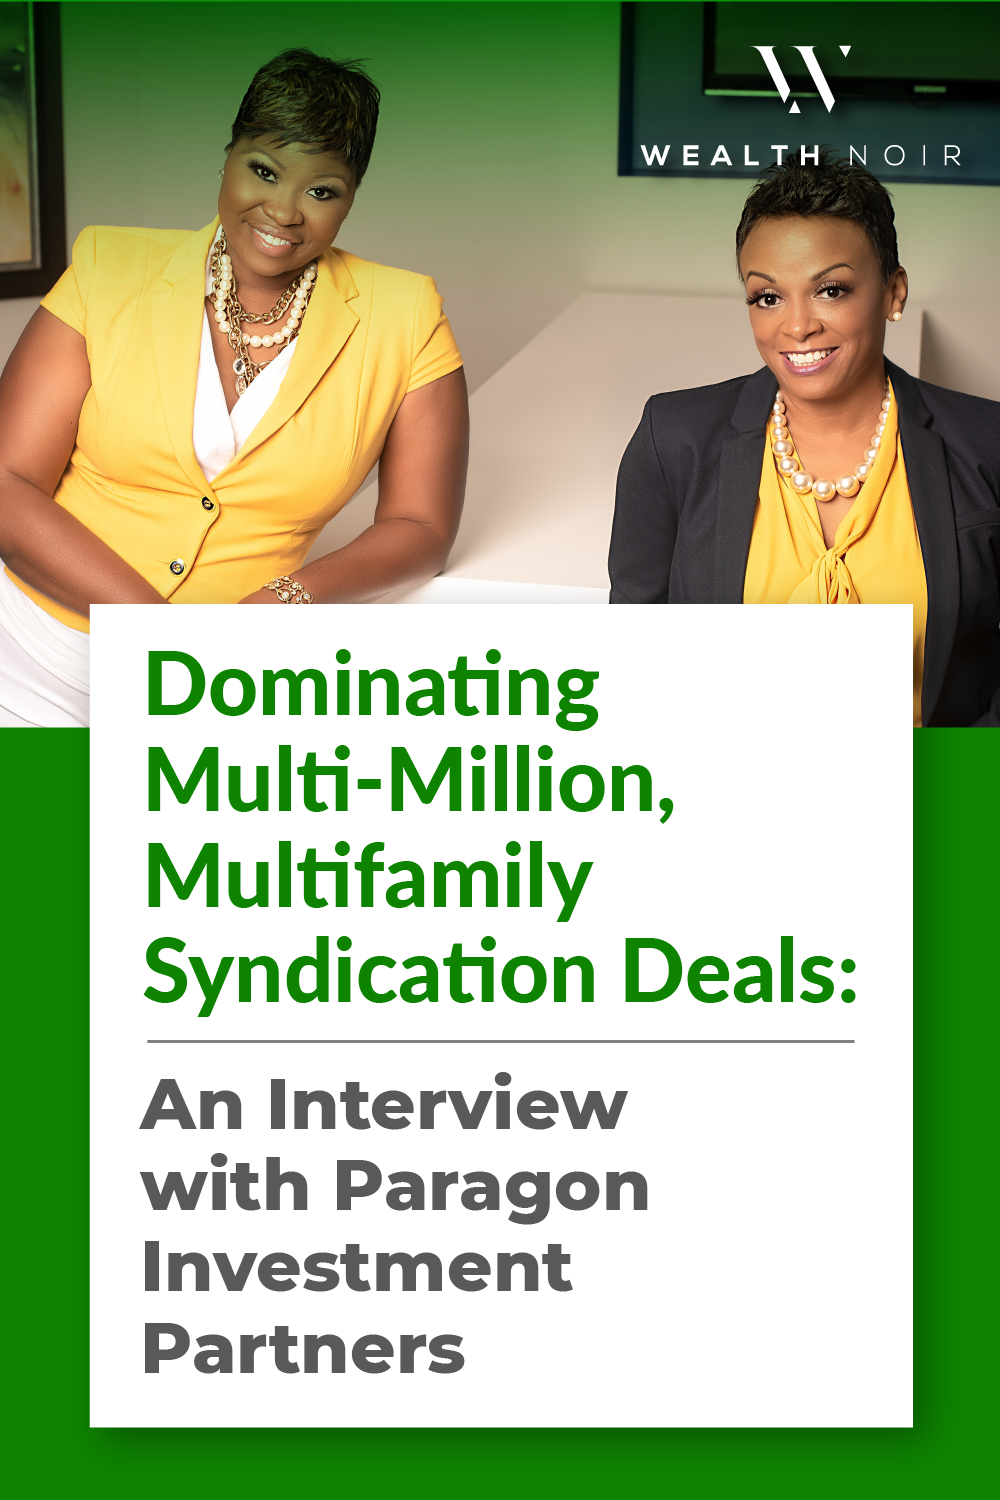 Dominating Multi-Million, Multifamily Syndication Deals: An Interview with Paragon Investment Partners